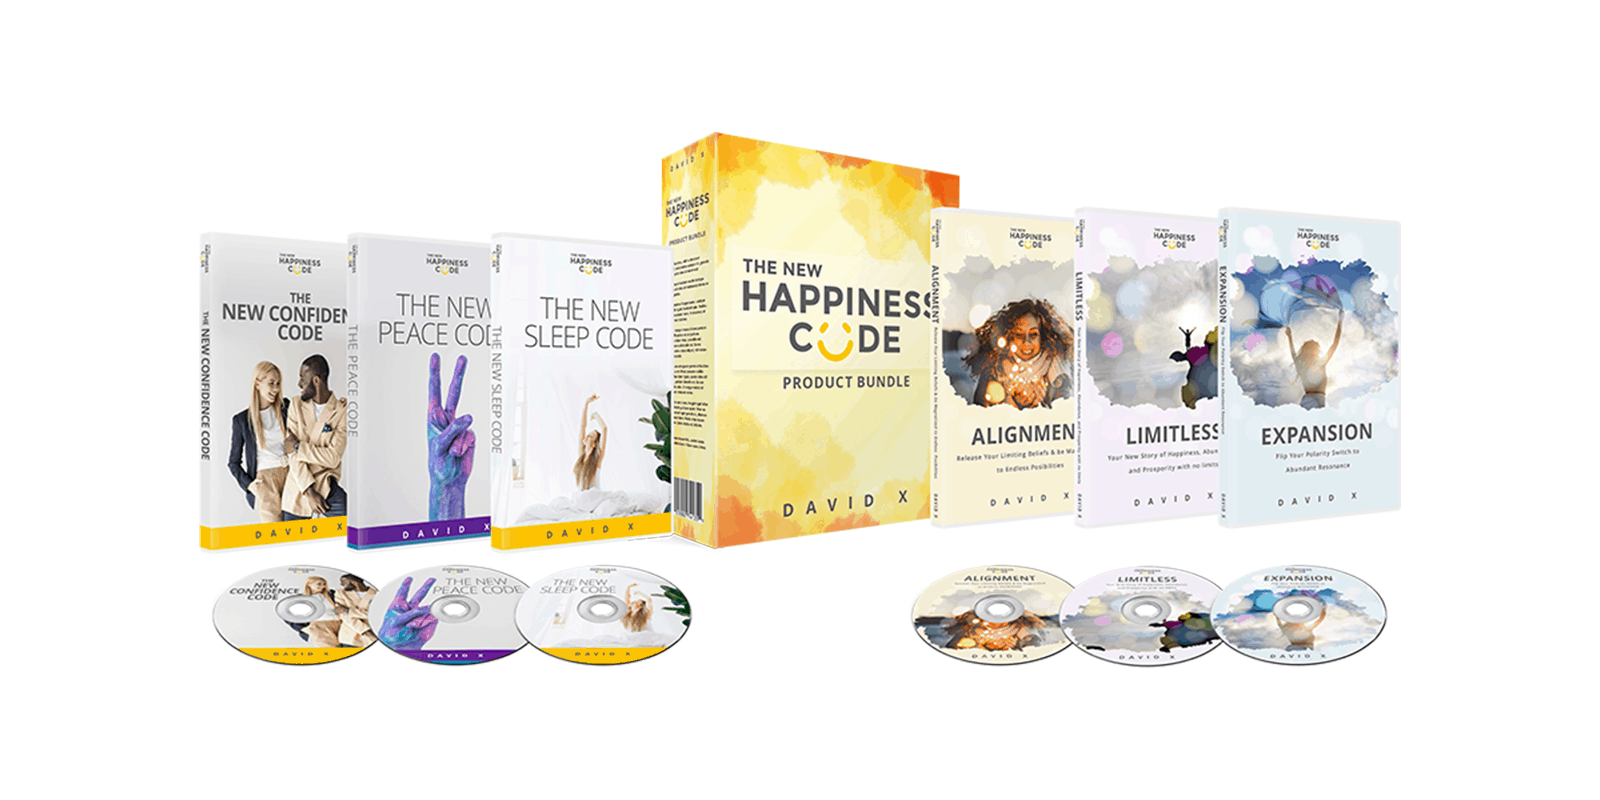 The-New-Happiness-Code-audio-free-download